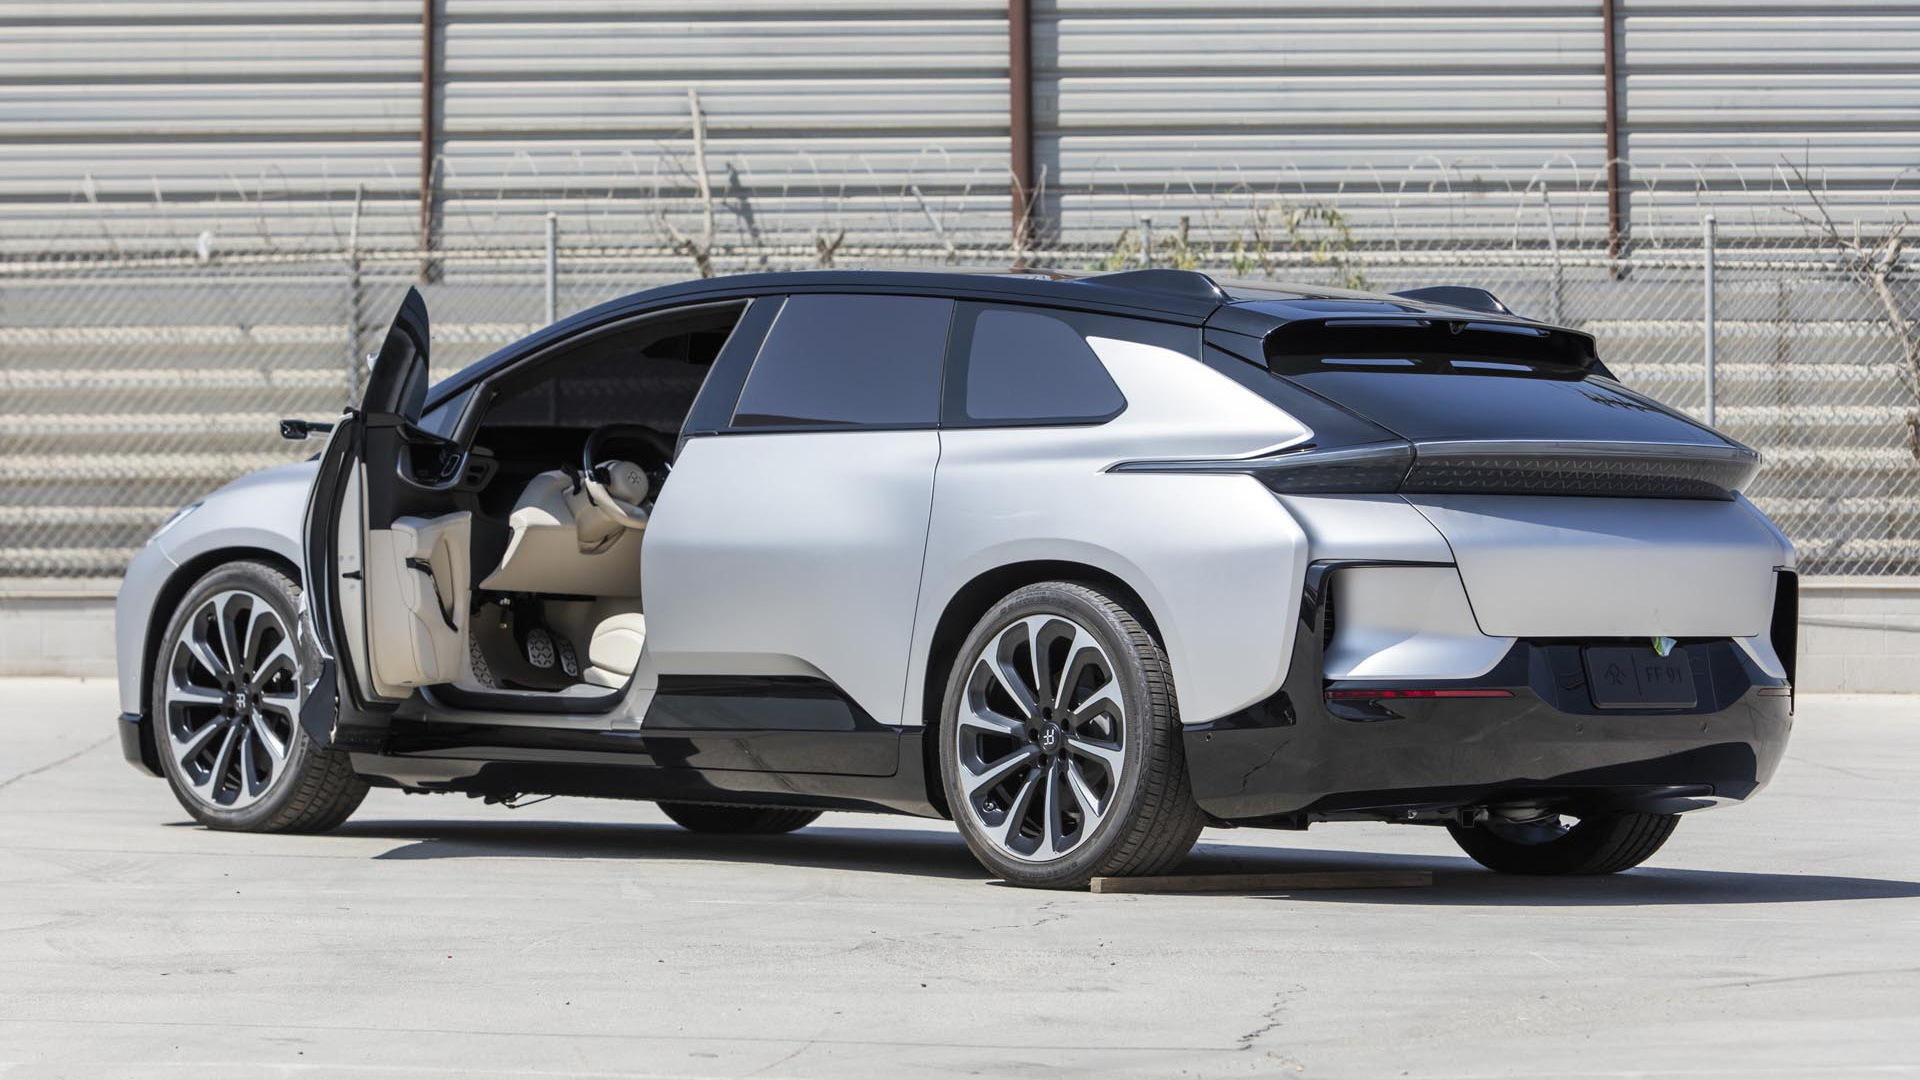 Faraday Future FF91 prototype - Photo credit: Worldwide Auctioneers